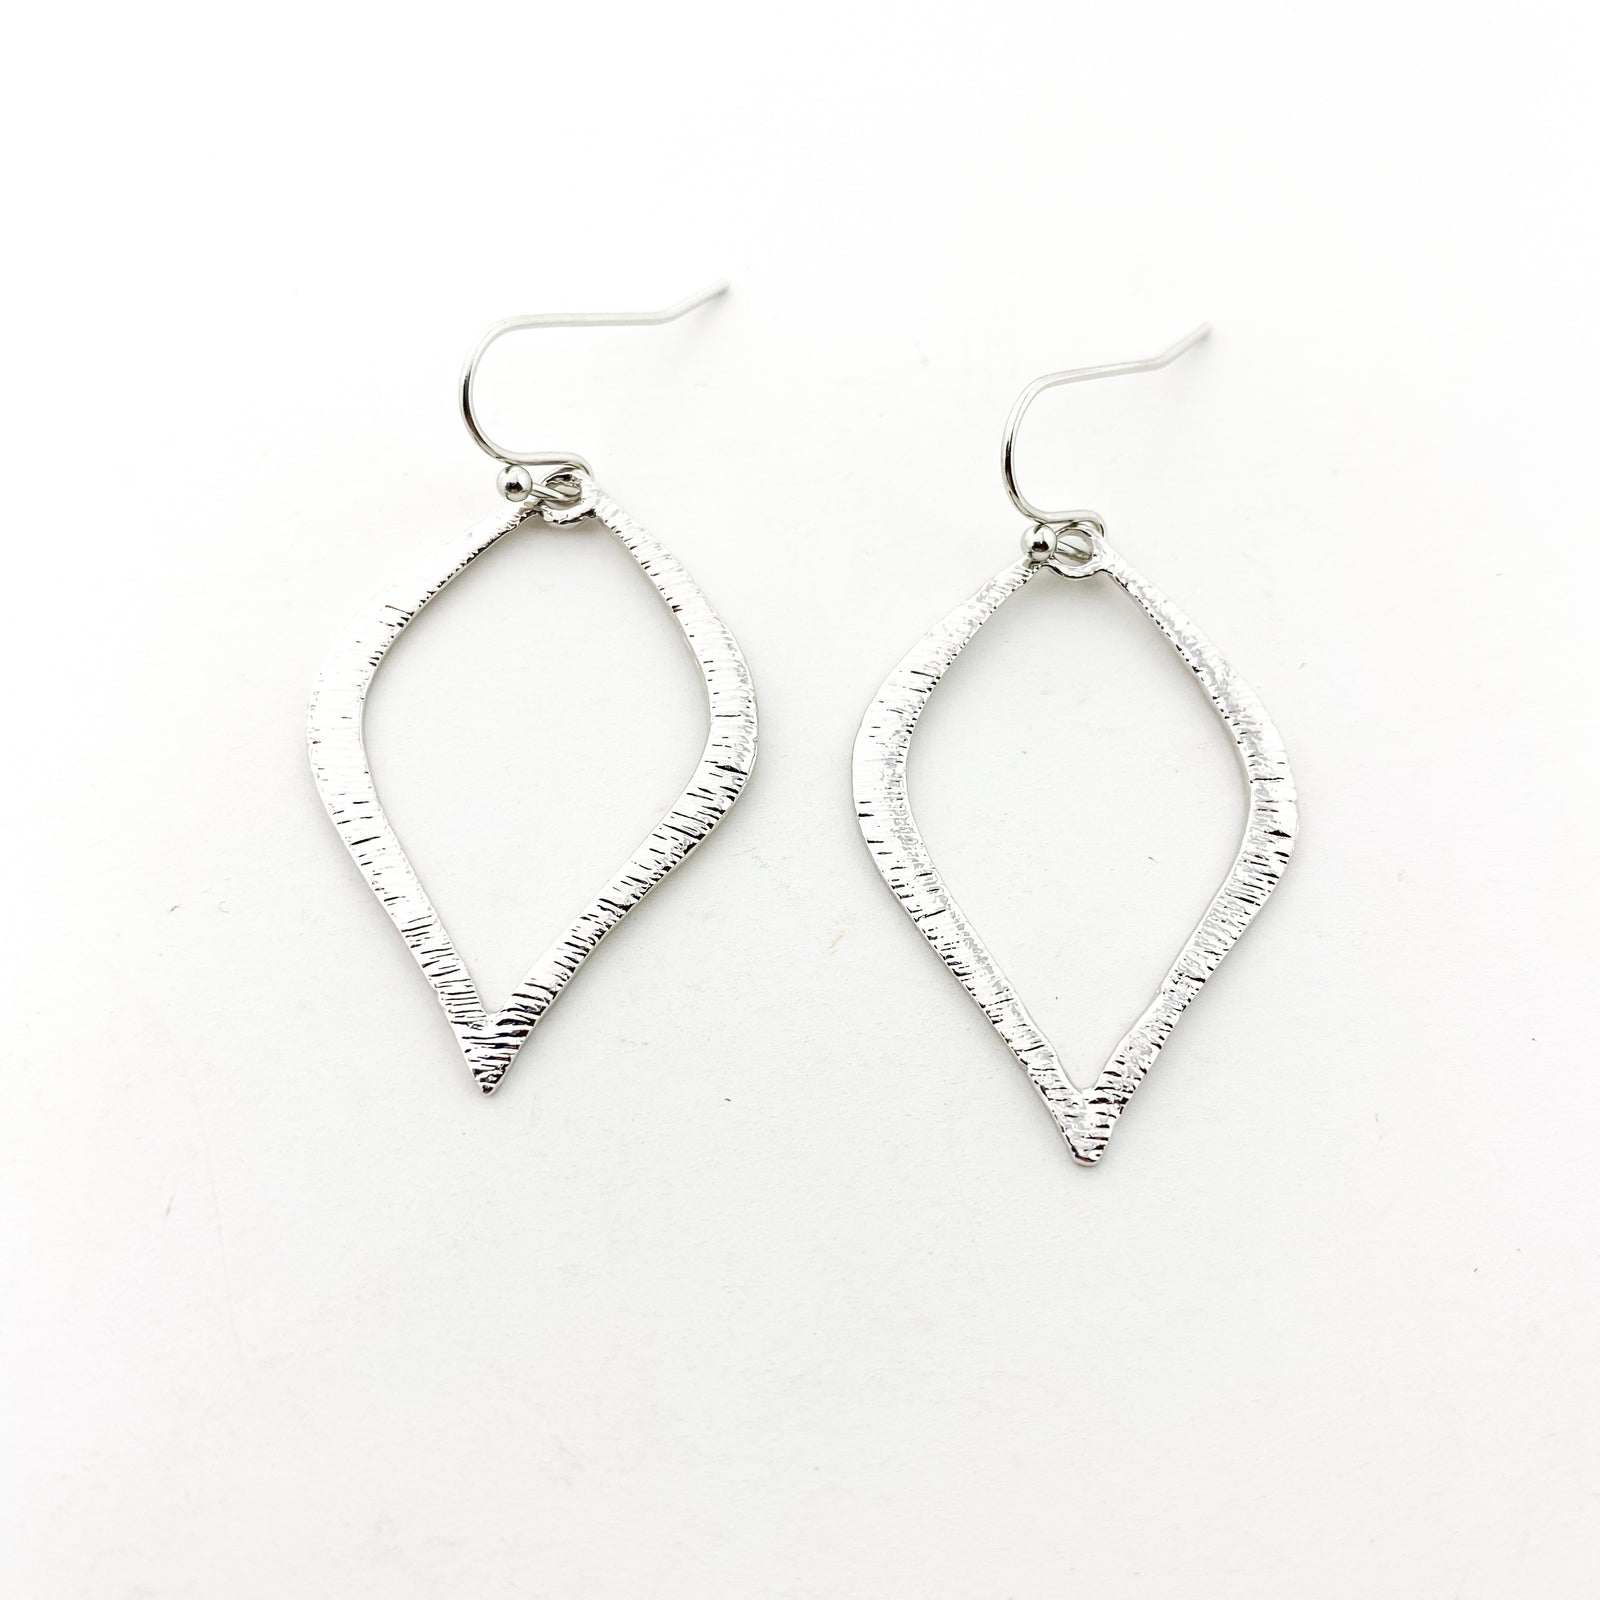 TEXTURED PETAL DROP EARRINGS | RHODIUM BRUSHED